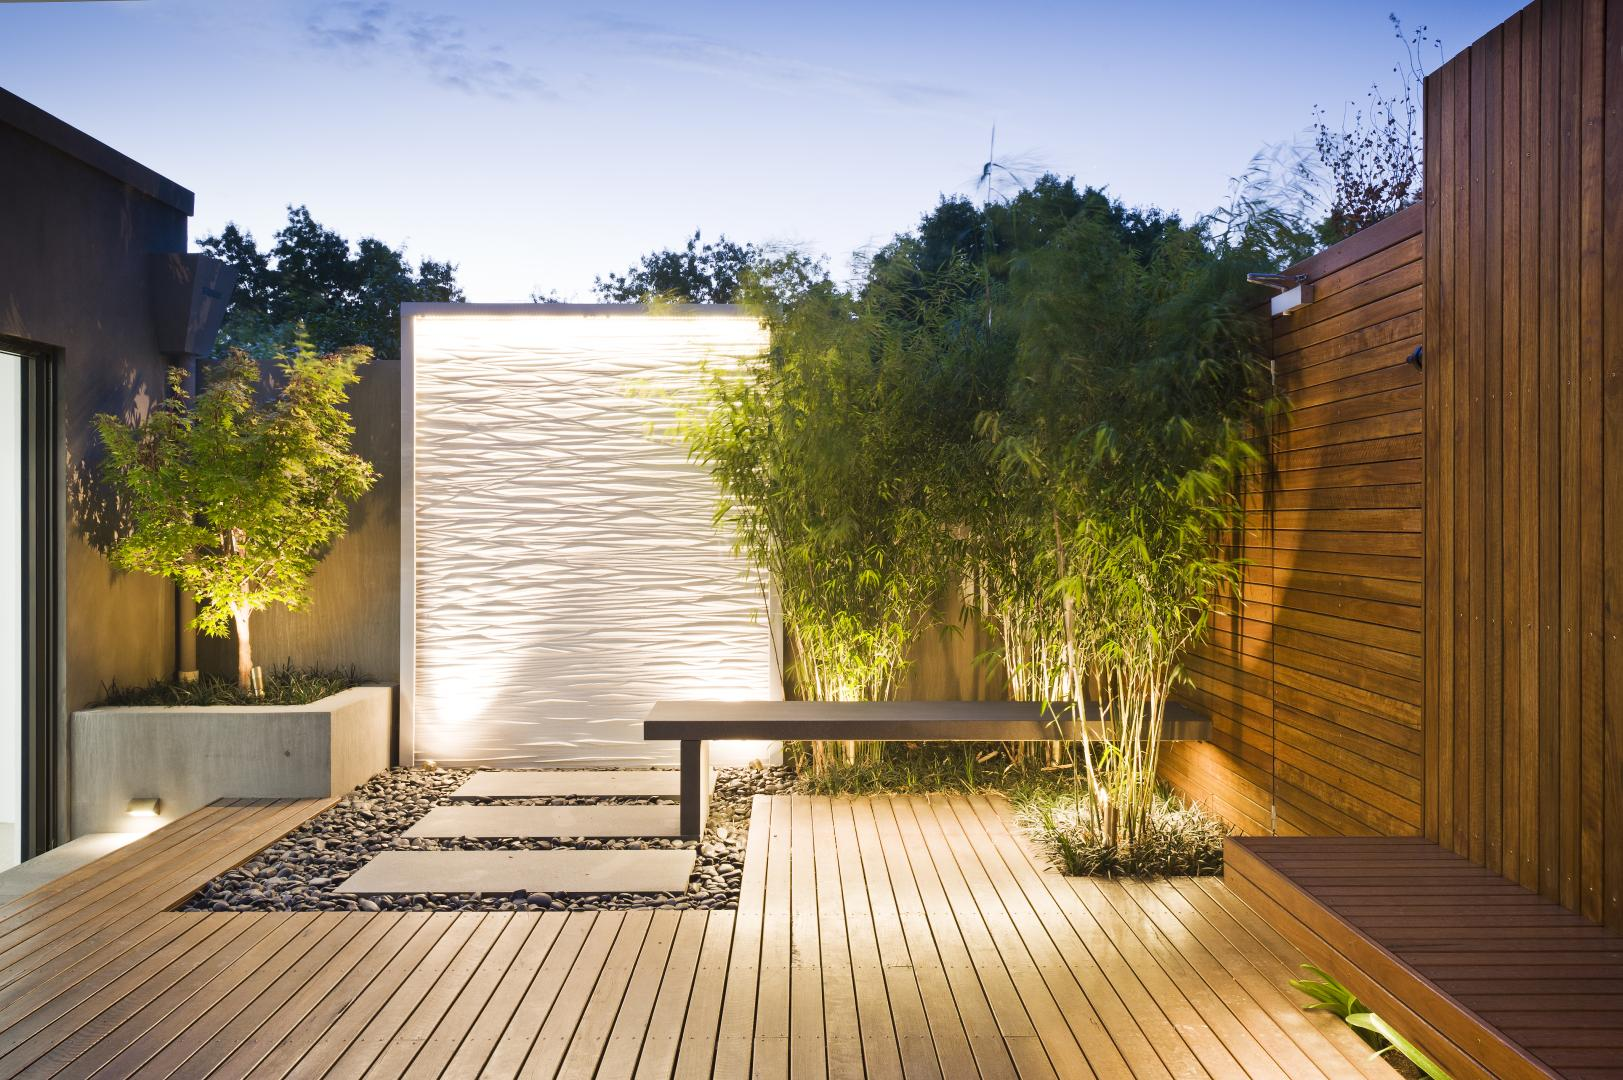 Mix of traditional and modern architecture which gives for Designer landscapes